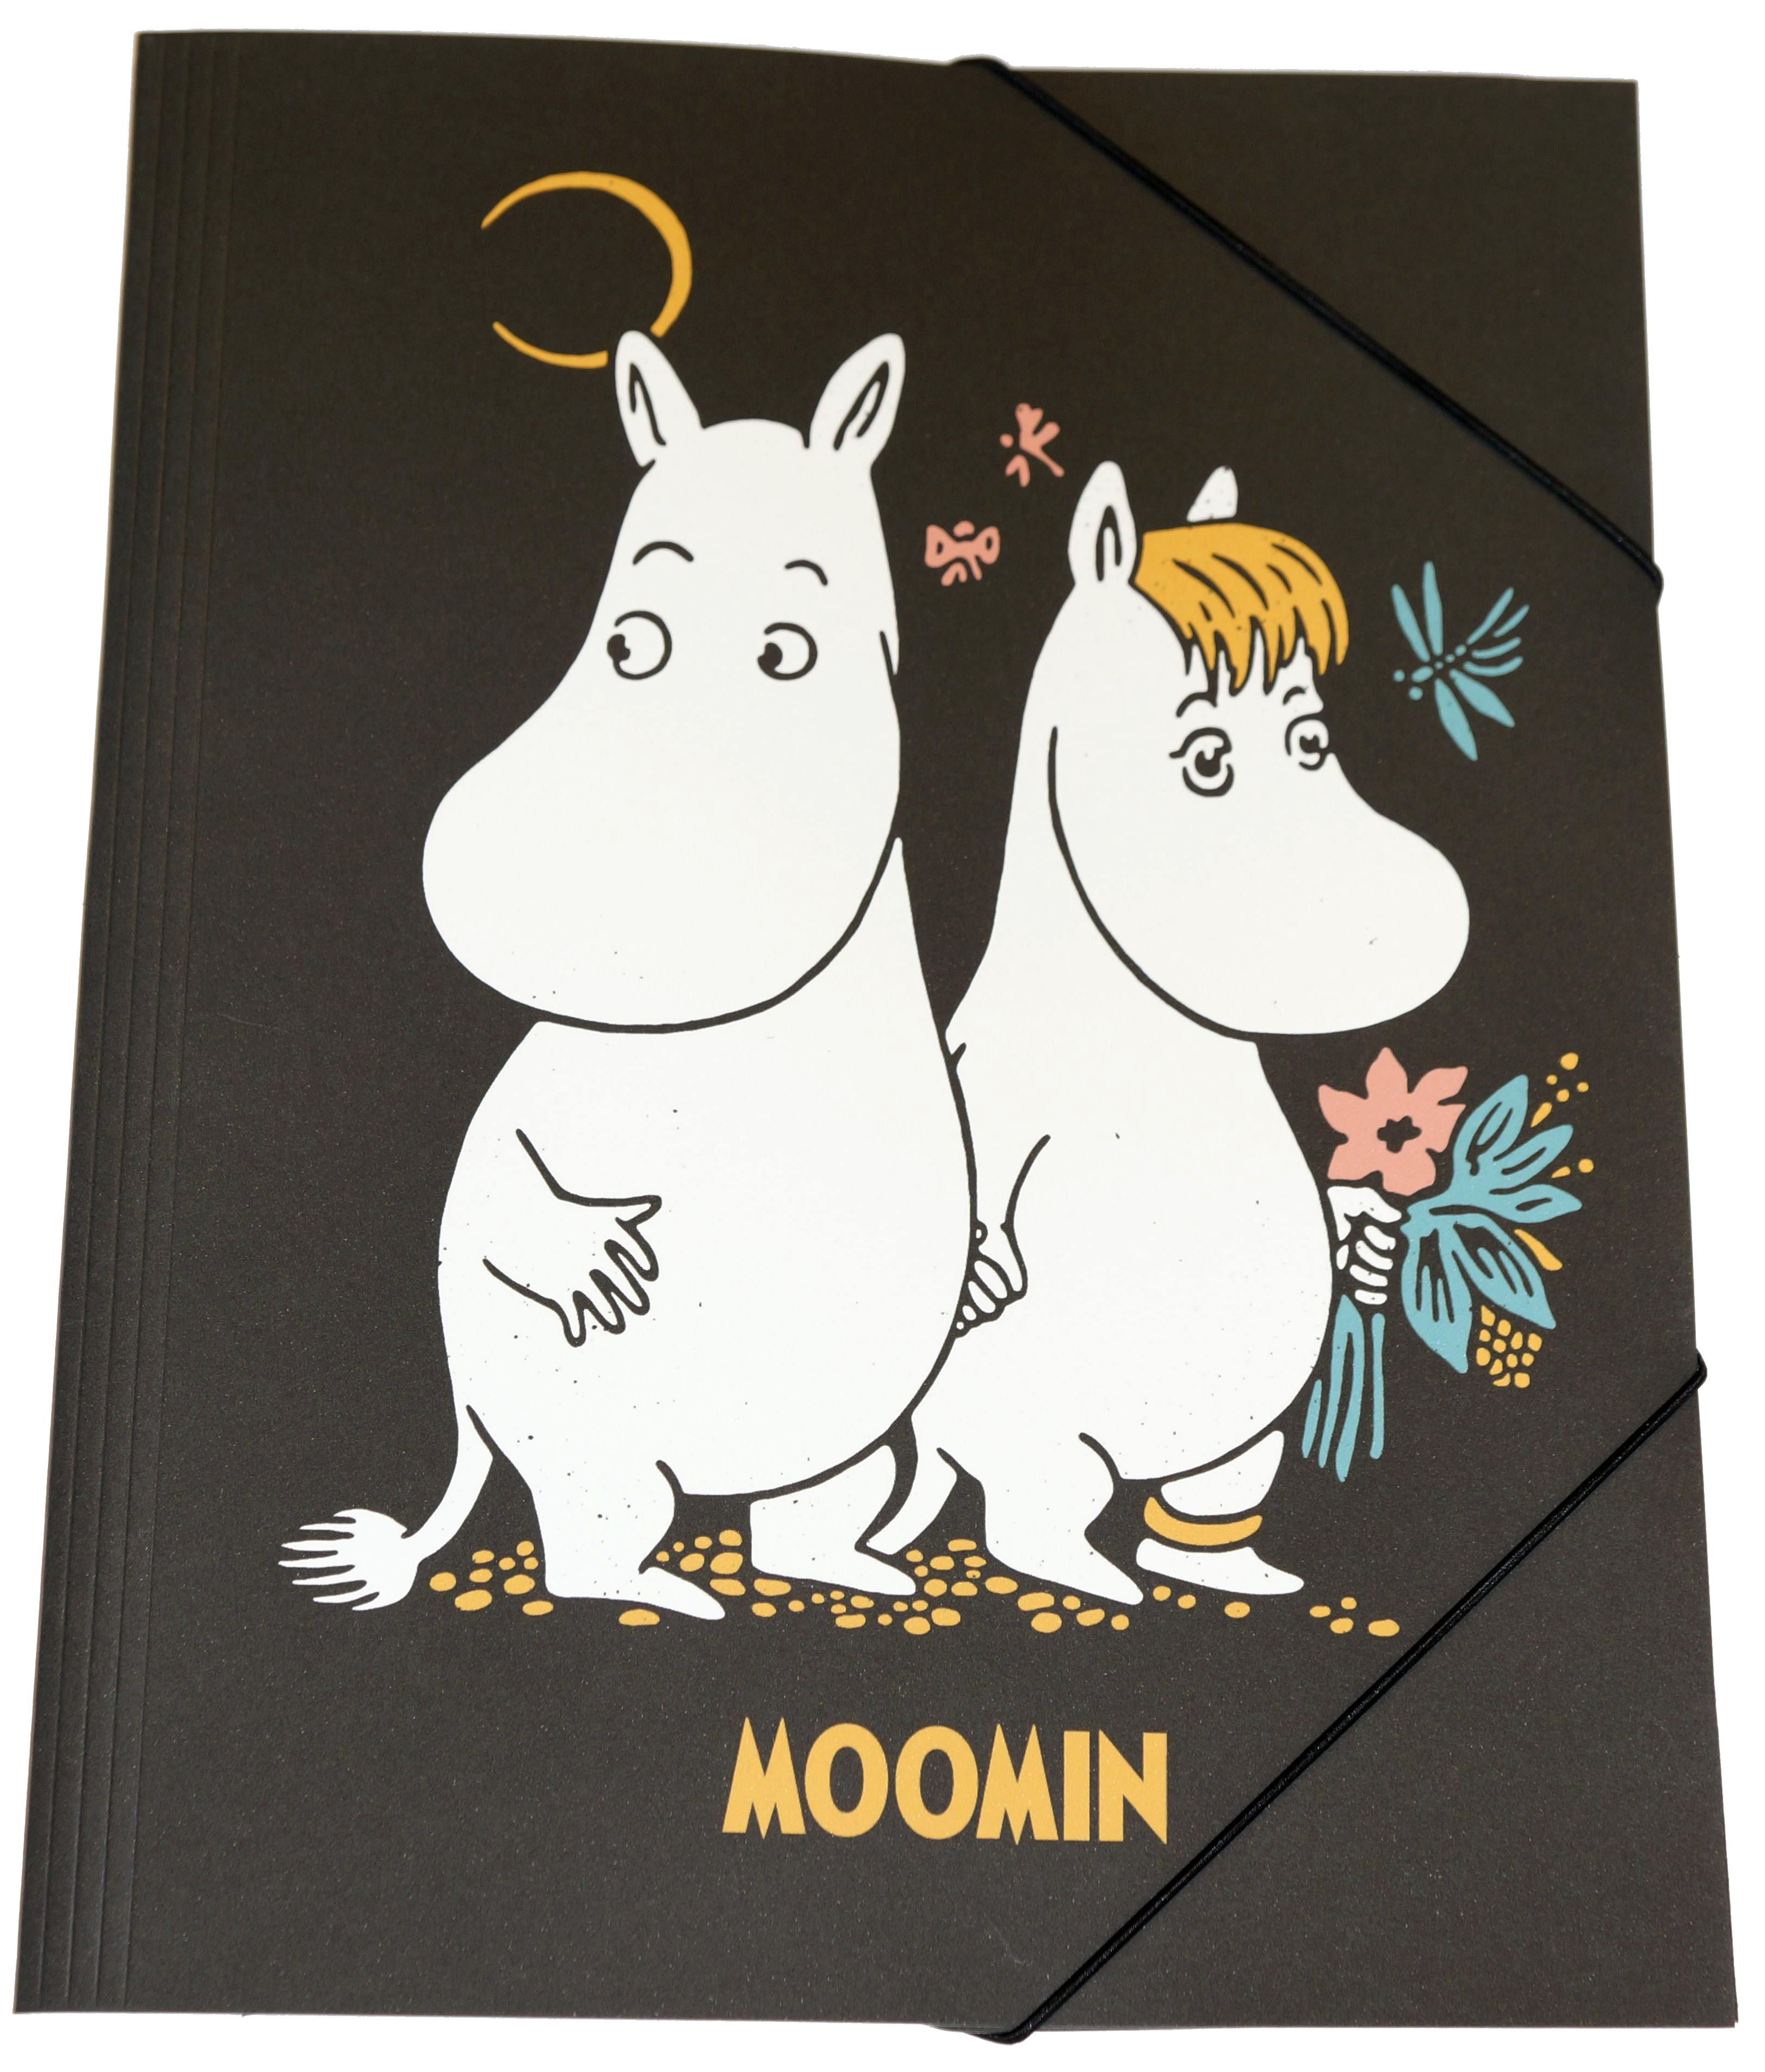 Anglo-Nordic Moomin Elastic band folder A4 SoftT